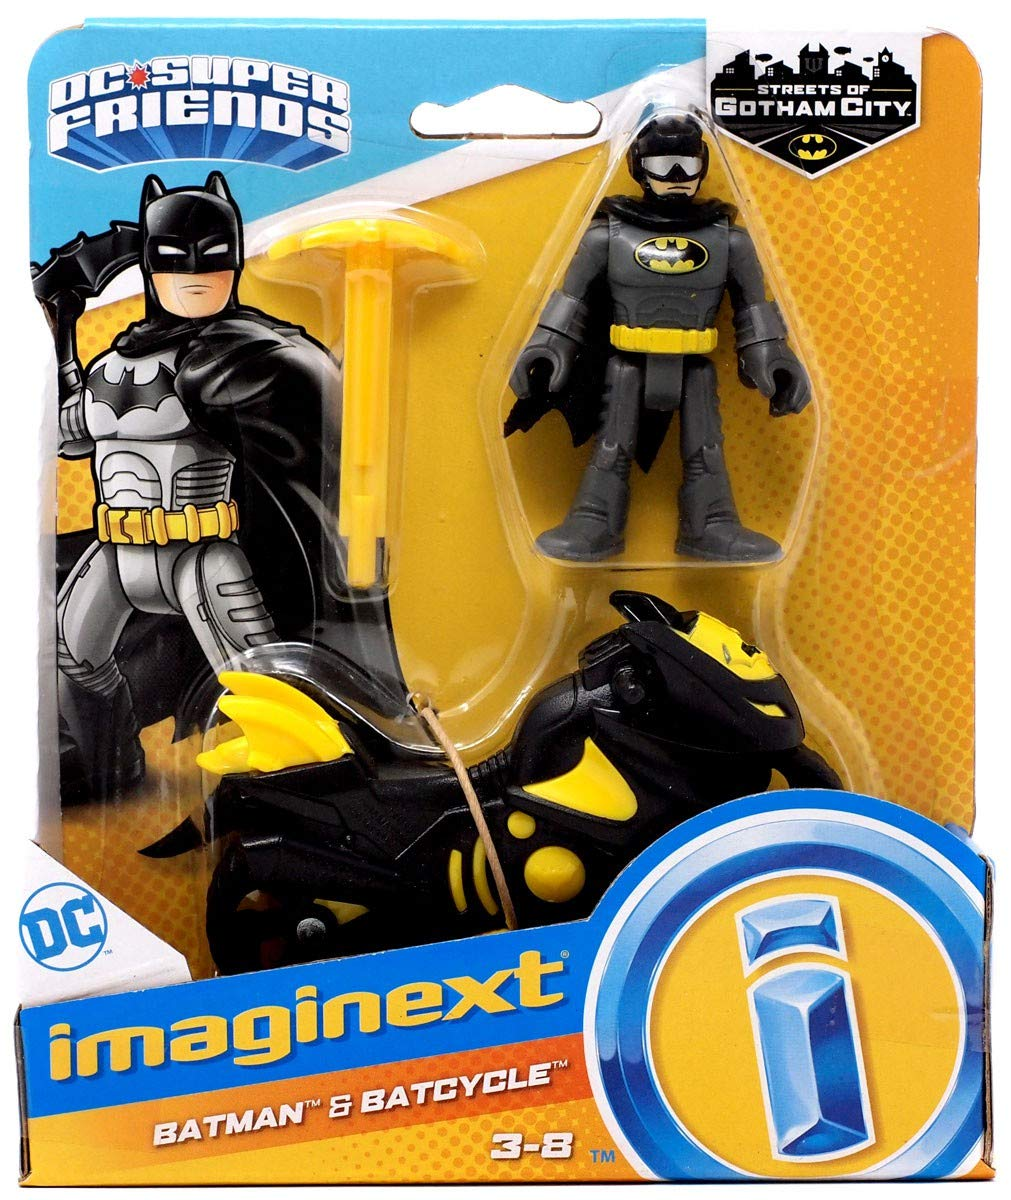 Imaginext DC Super Friends Batman /& Batcycle Toy Figure Set